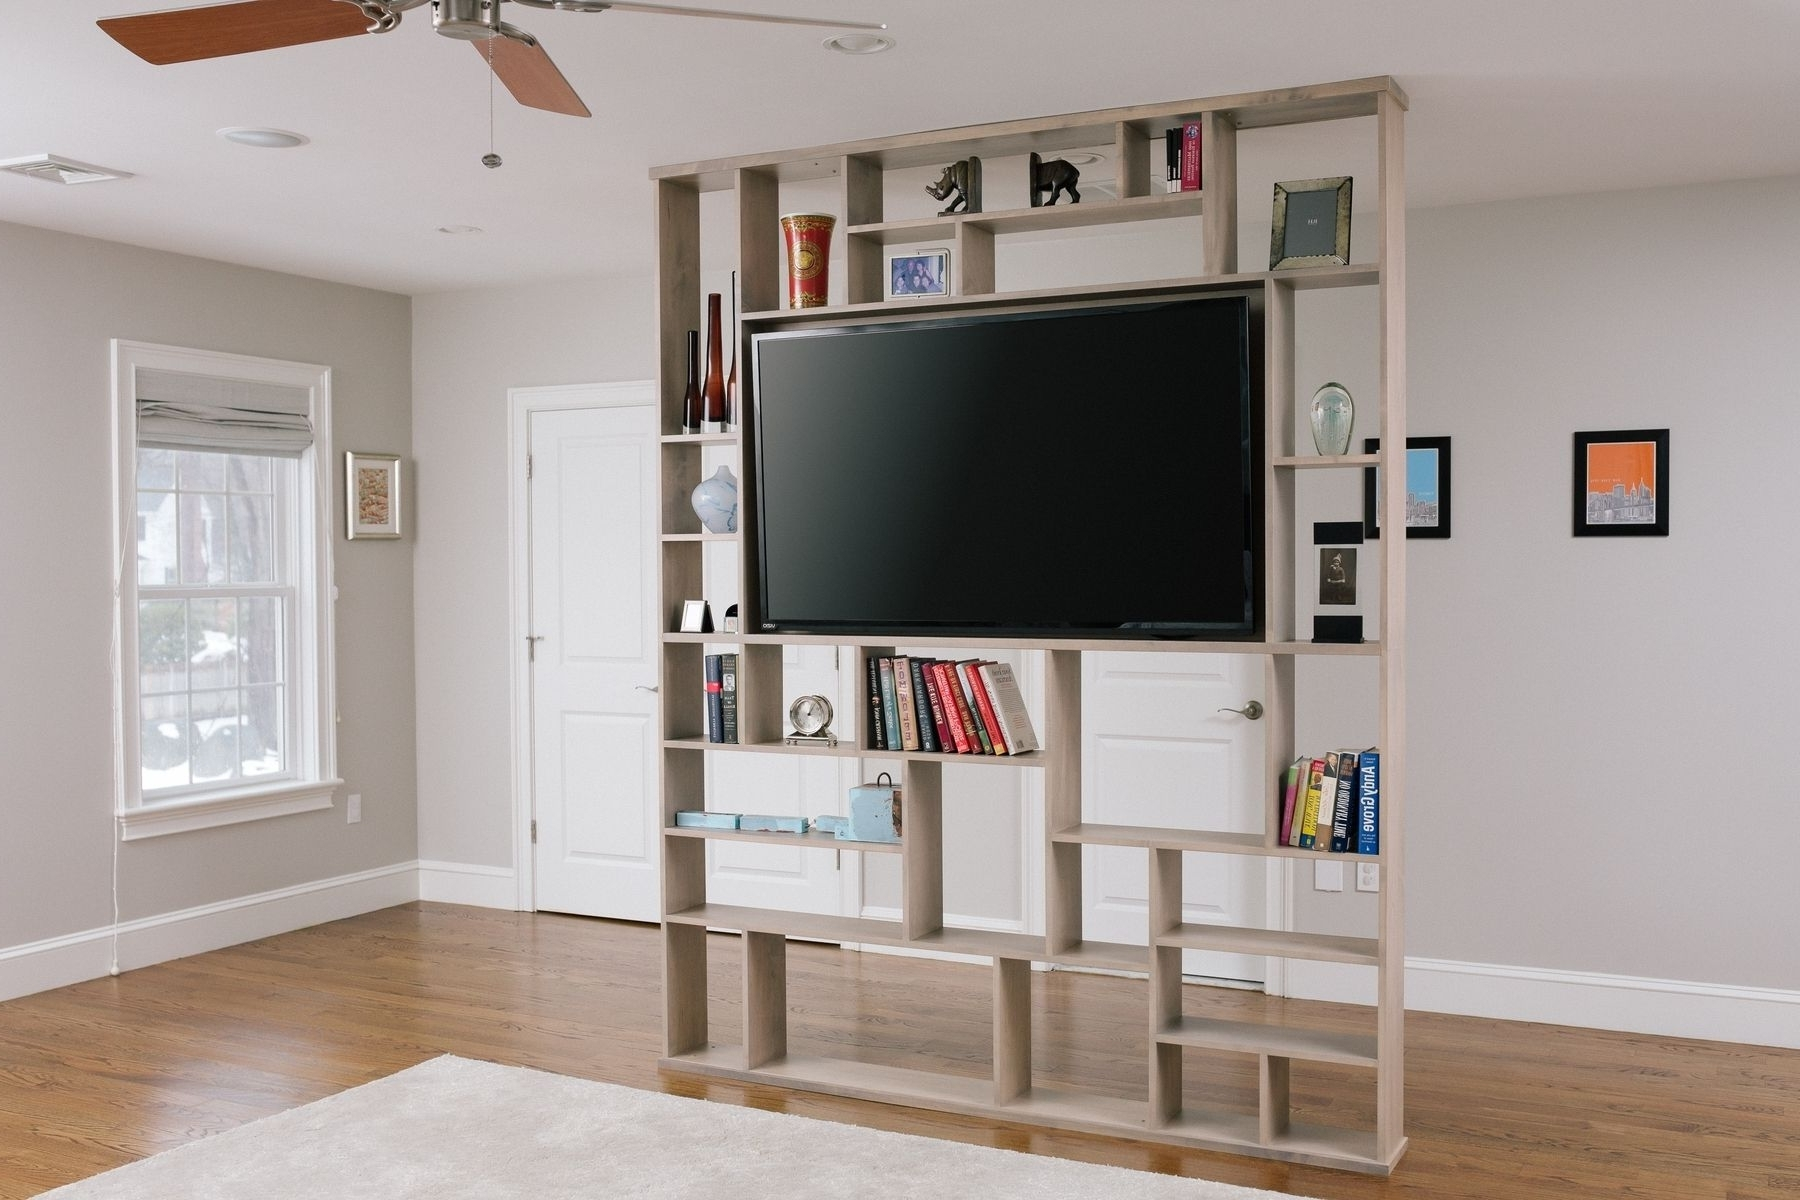 Recent Hand Crafted Lexington Room Divider / Bookshelf / Tv Standcorl In Tv And Bookshelves (View 7 of 15)